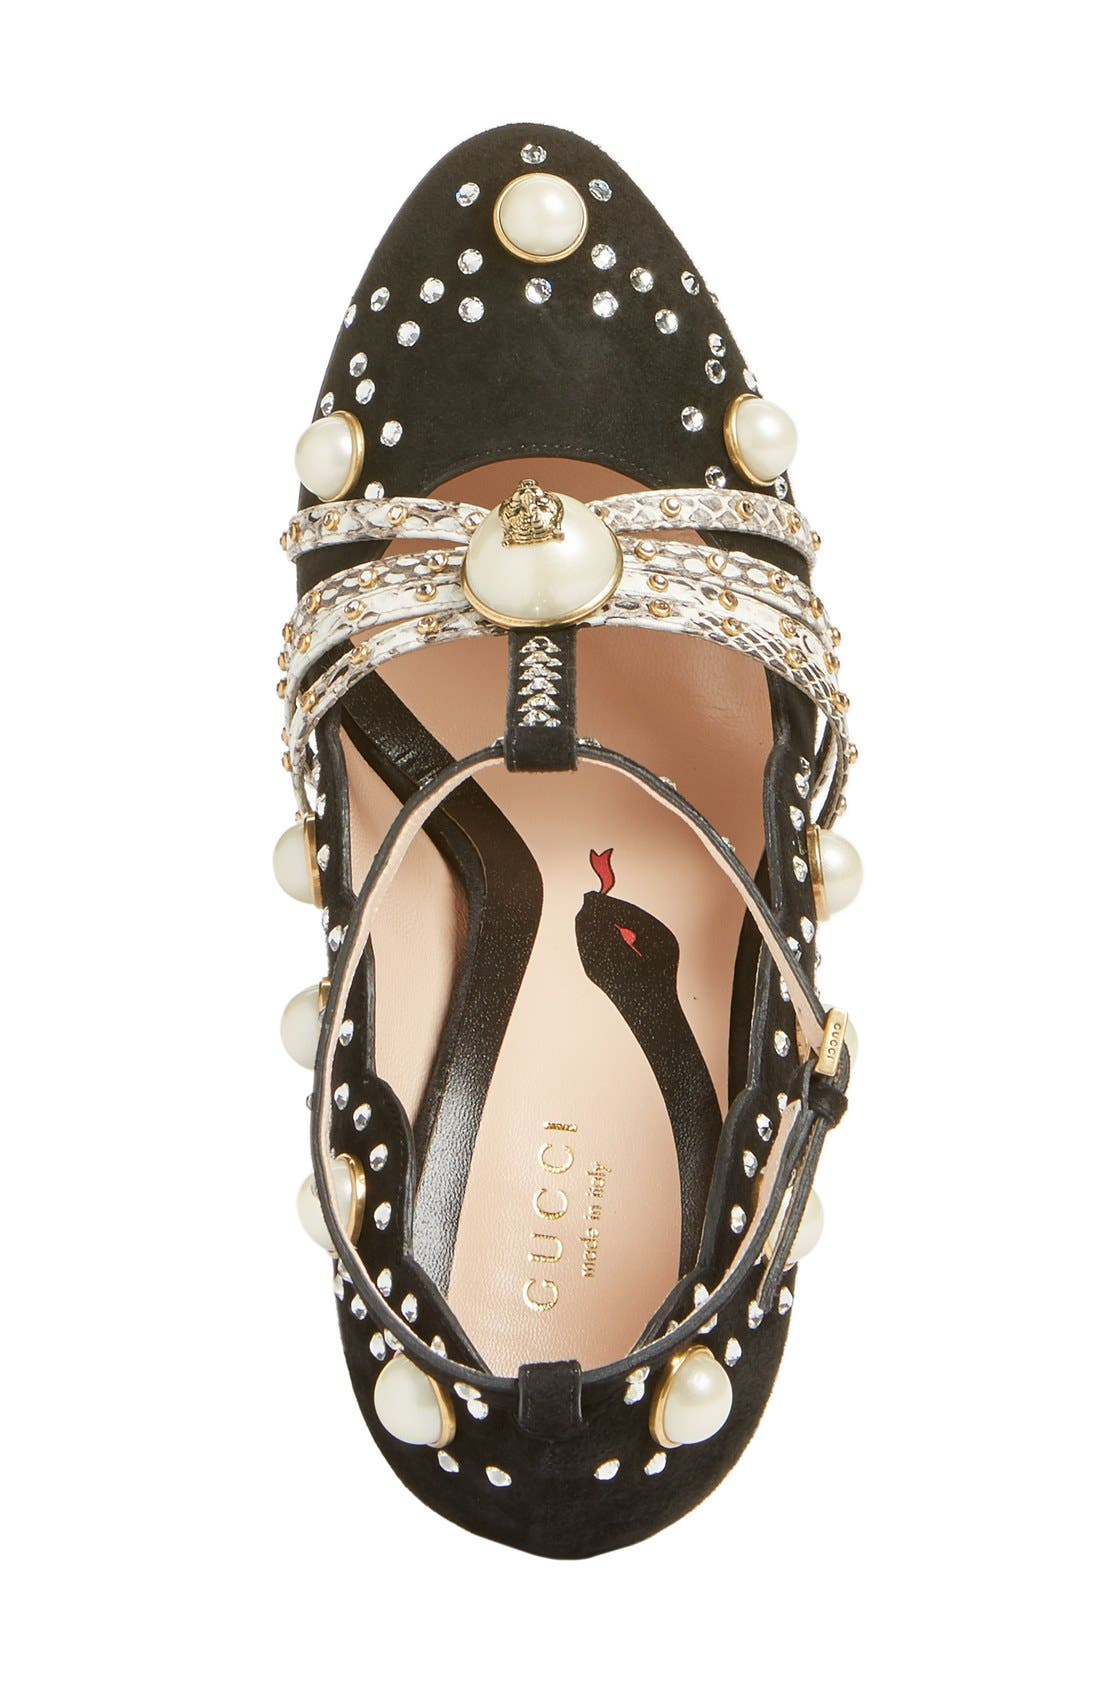 Ofelia Pearly Crystal Embellished Pump,                             Alternate thumbnail 3, color,                             001